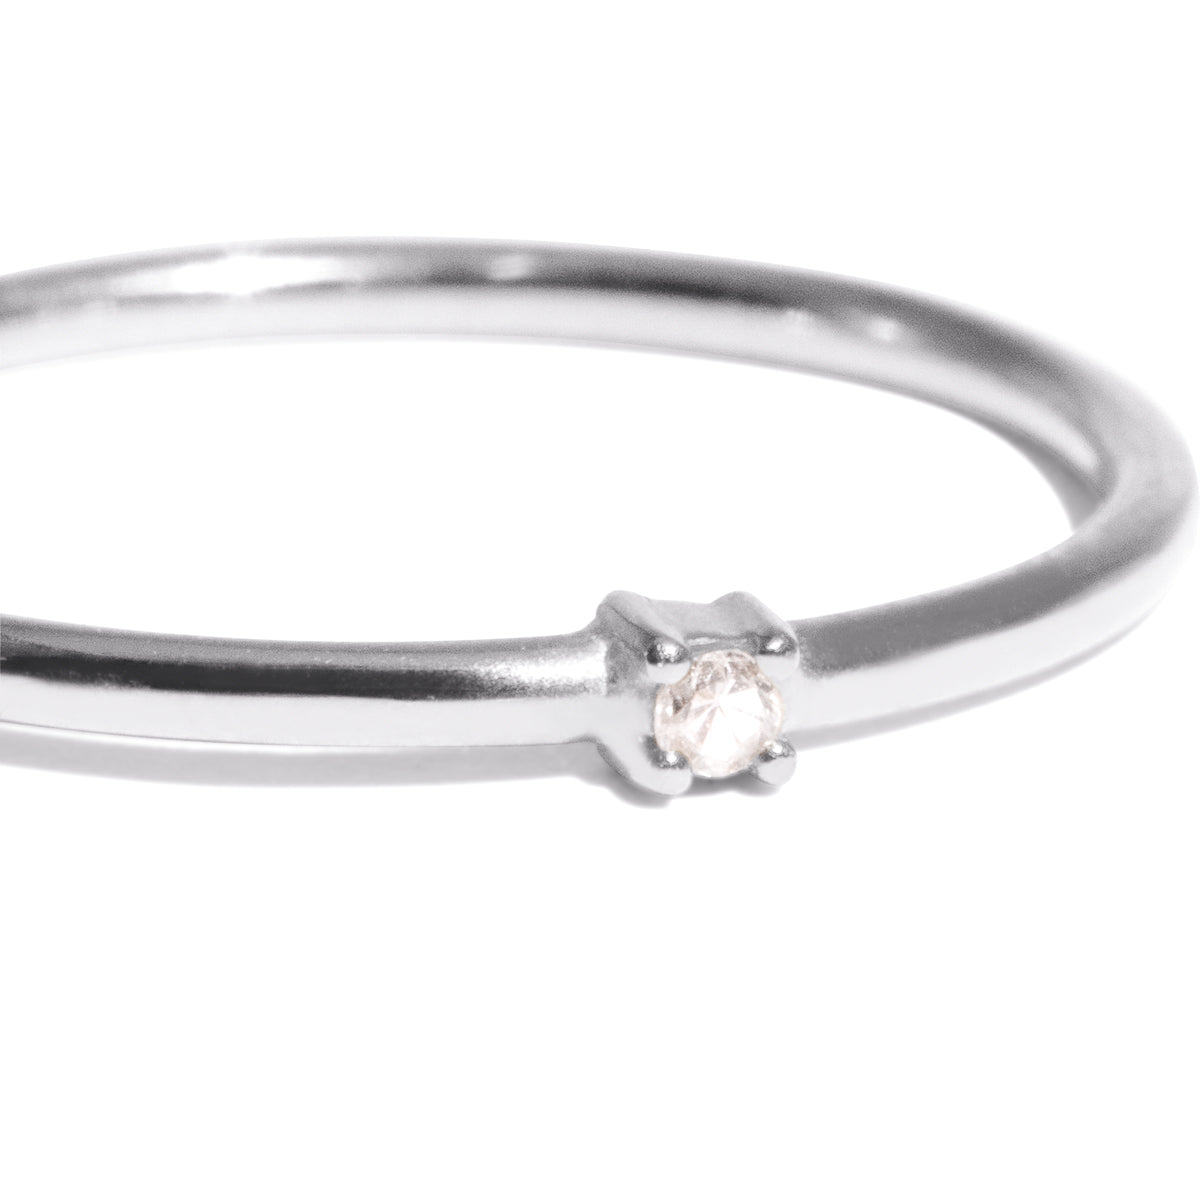 The Silver Diamond Speck Ring